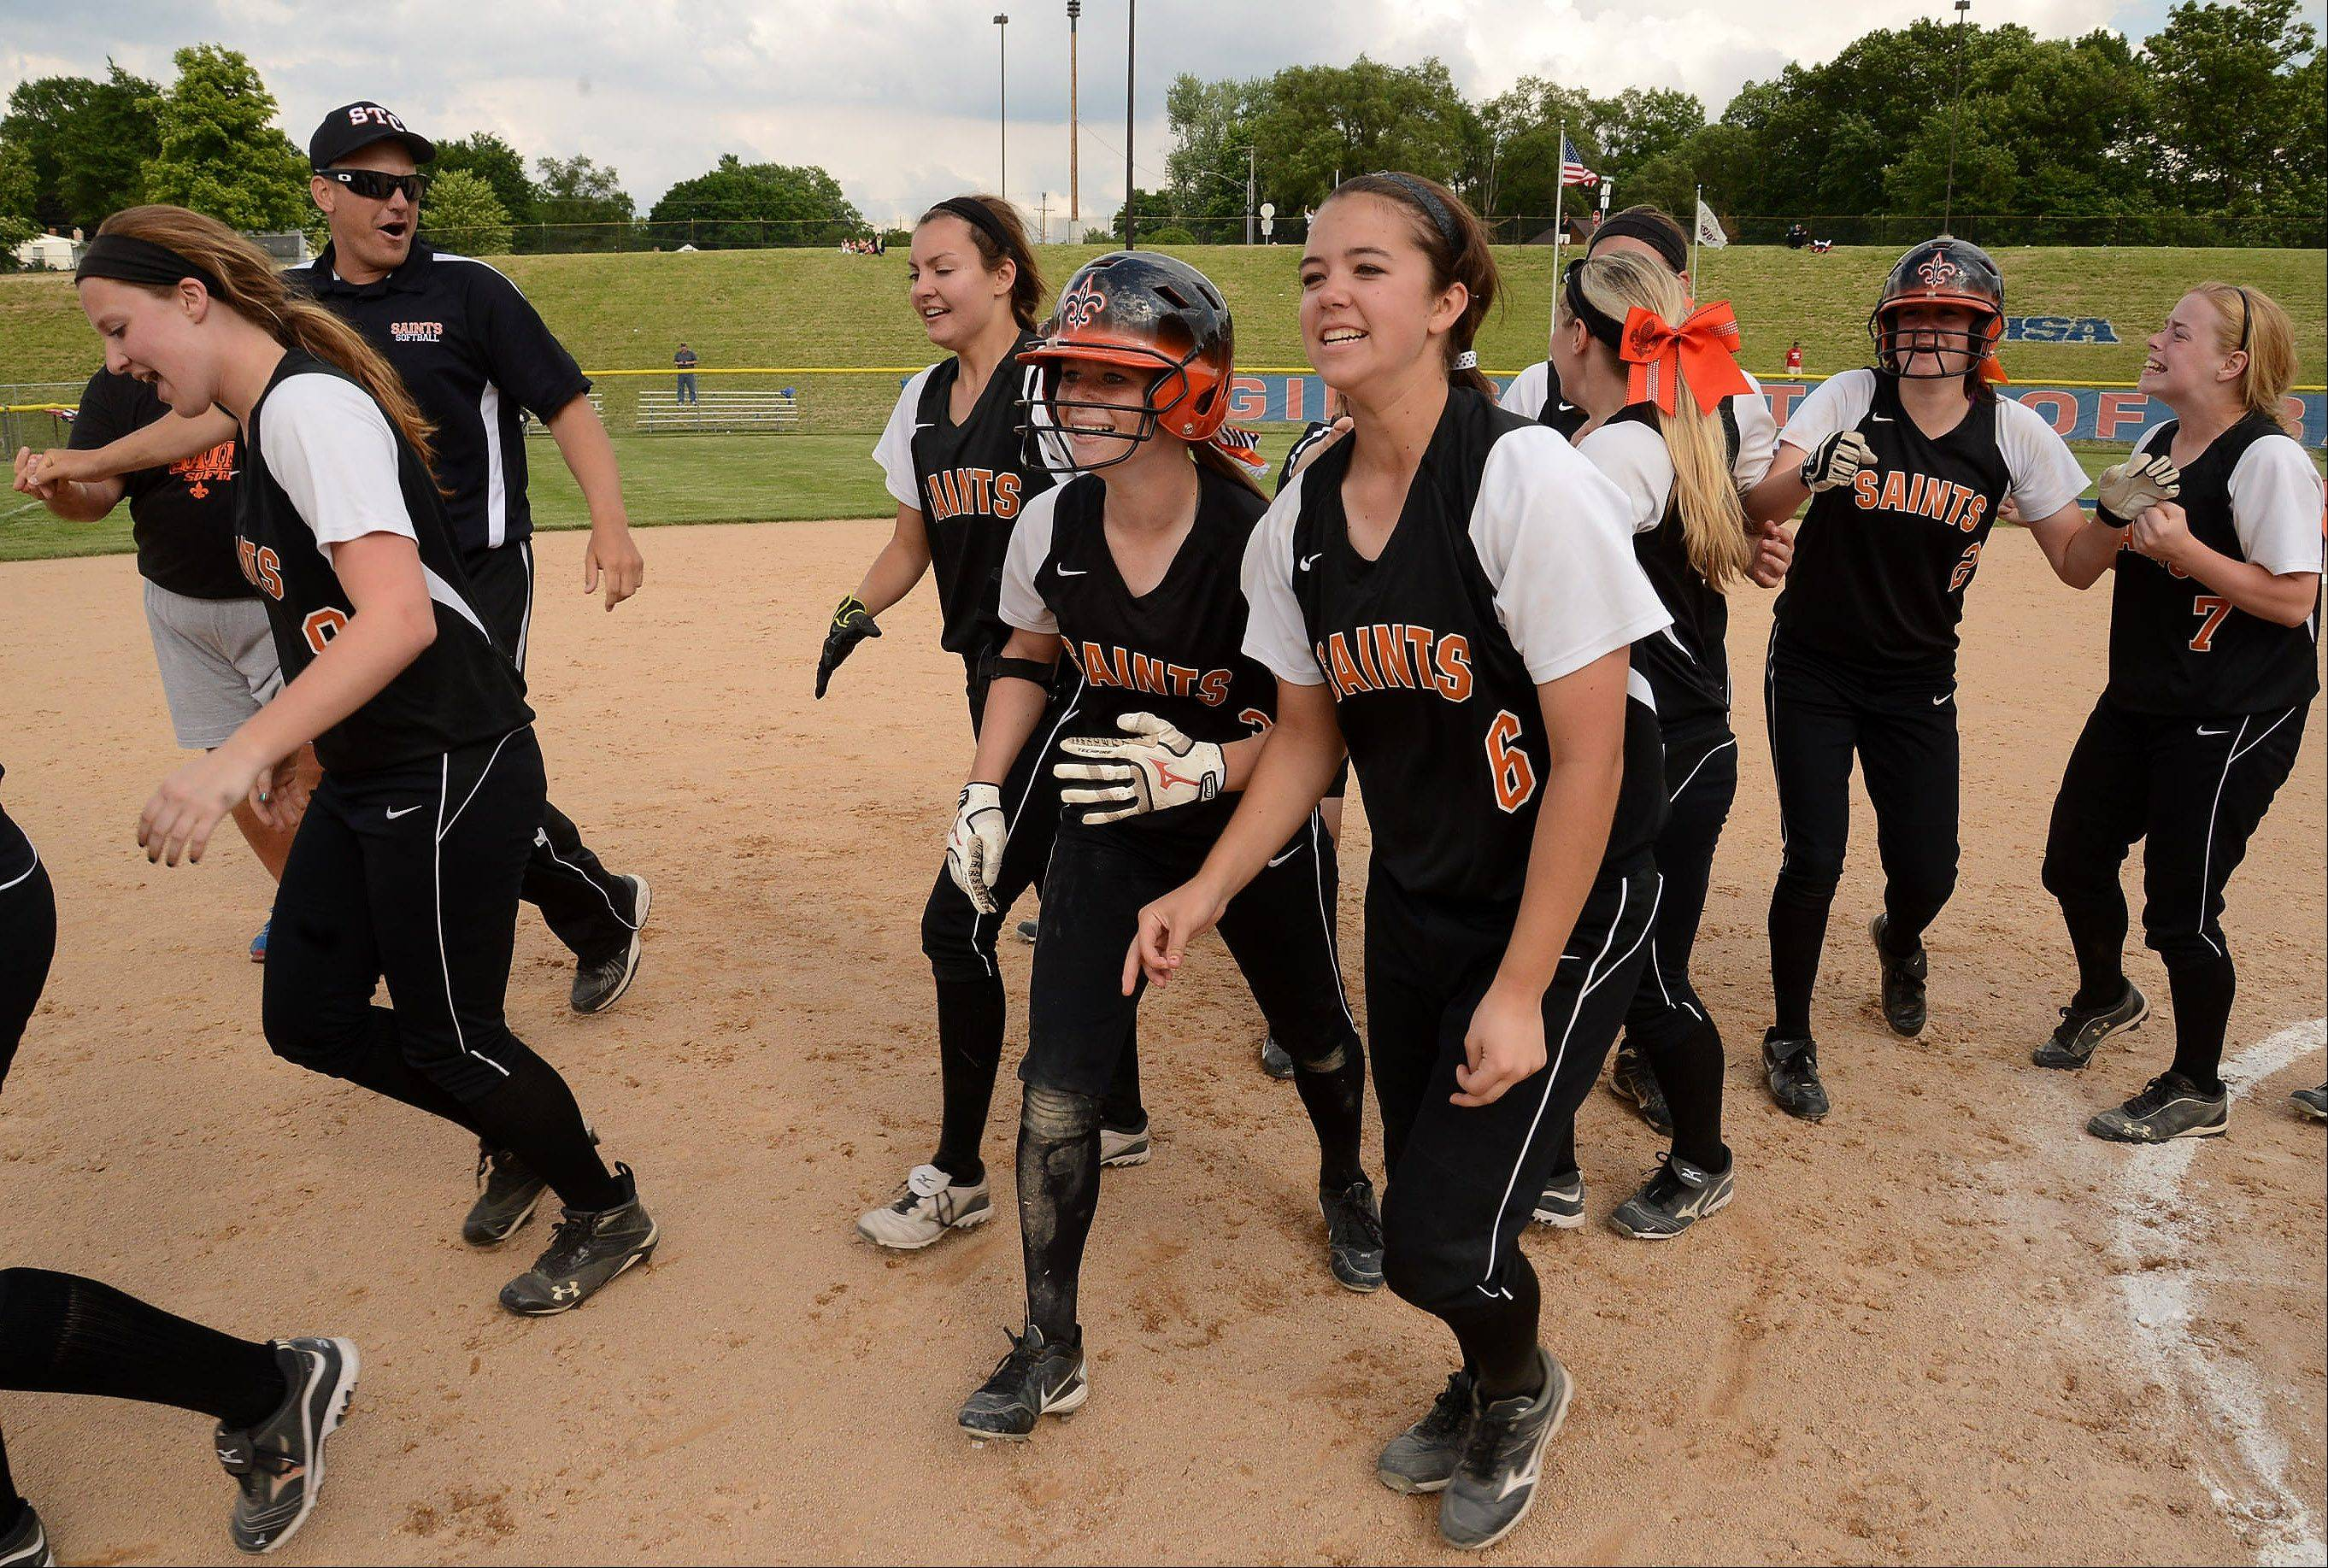 St. Charles celebrates after defeating Barrington in the bottom of the seventh inning on a game-winning two-out double by Olivia Lorenzini in the Class 4A state semifinals.